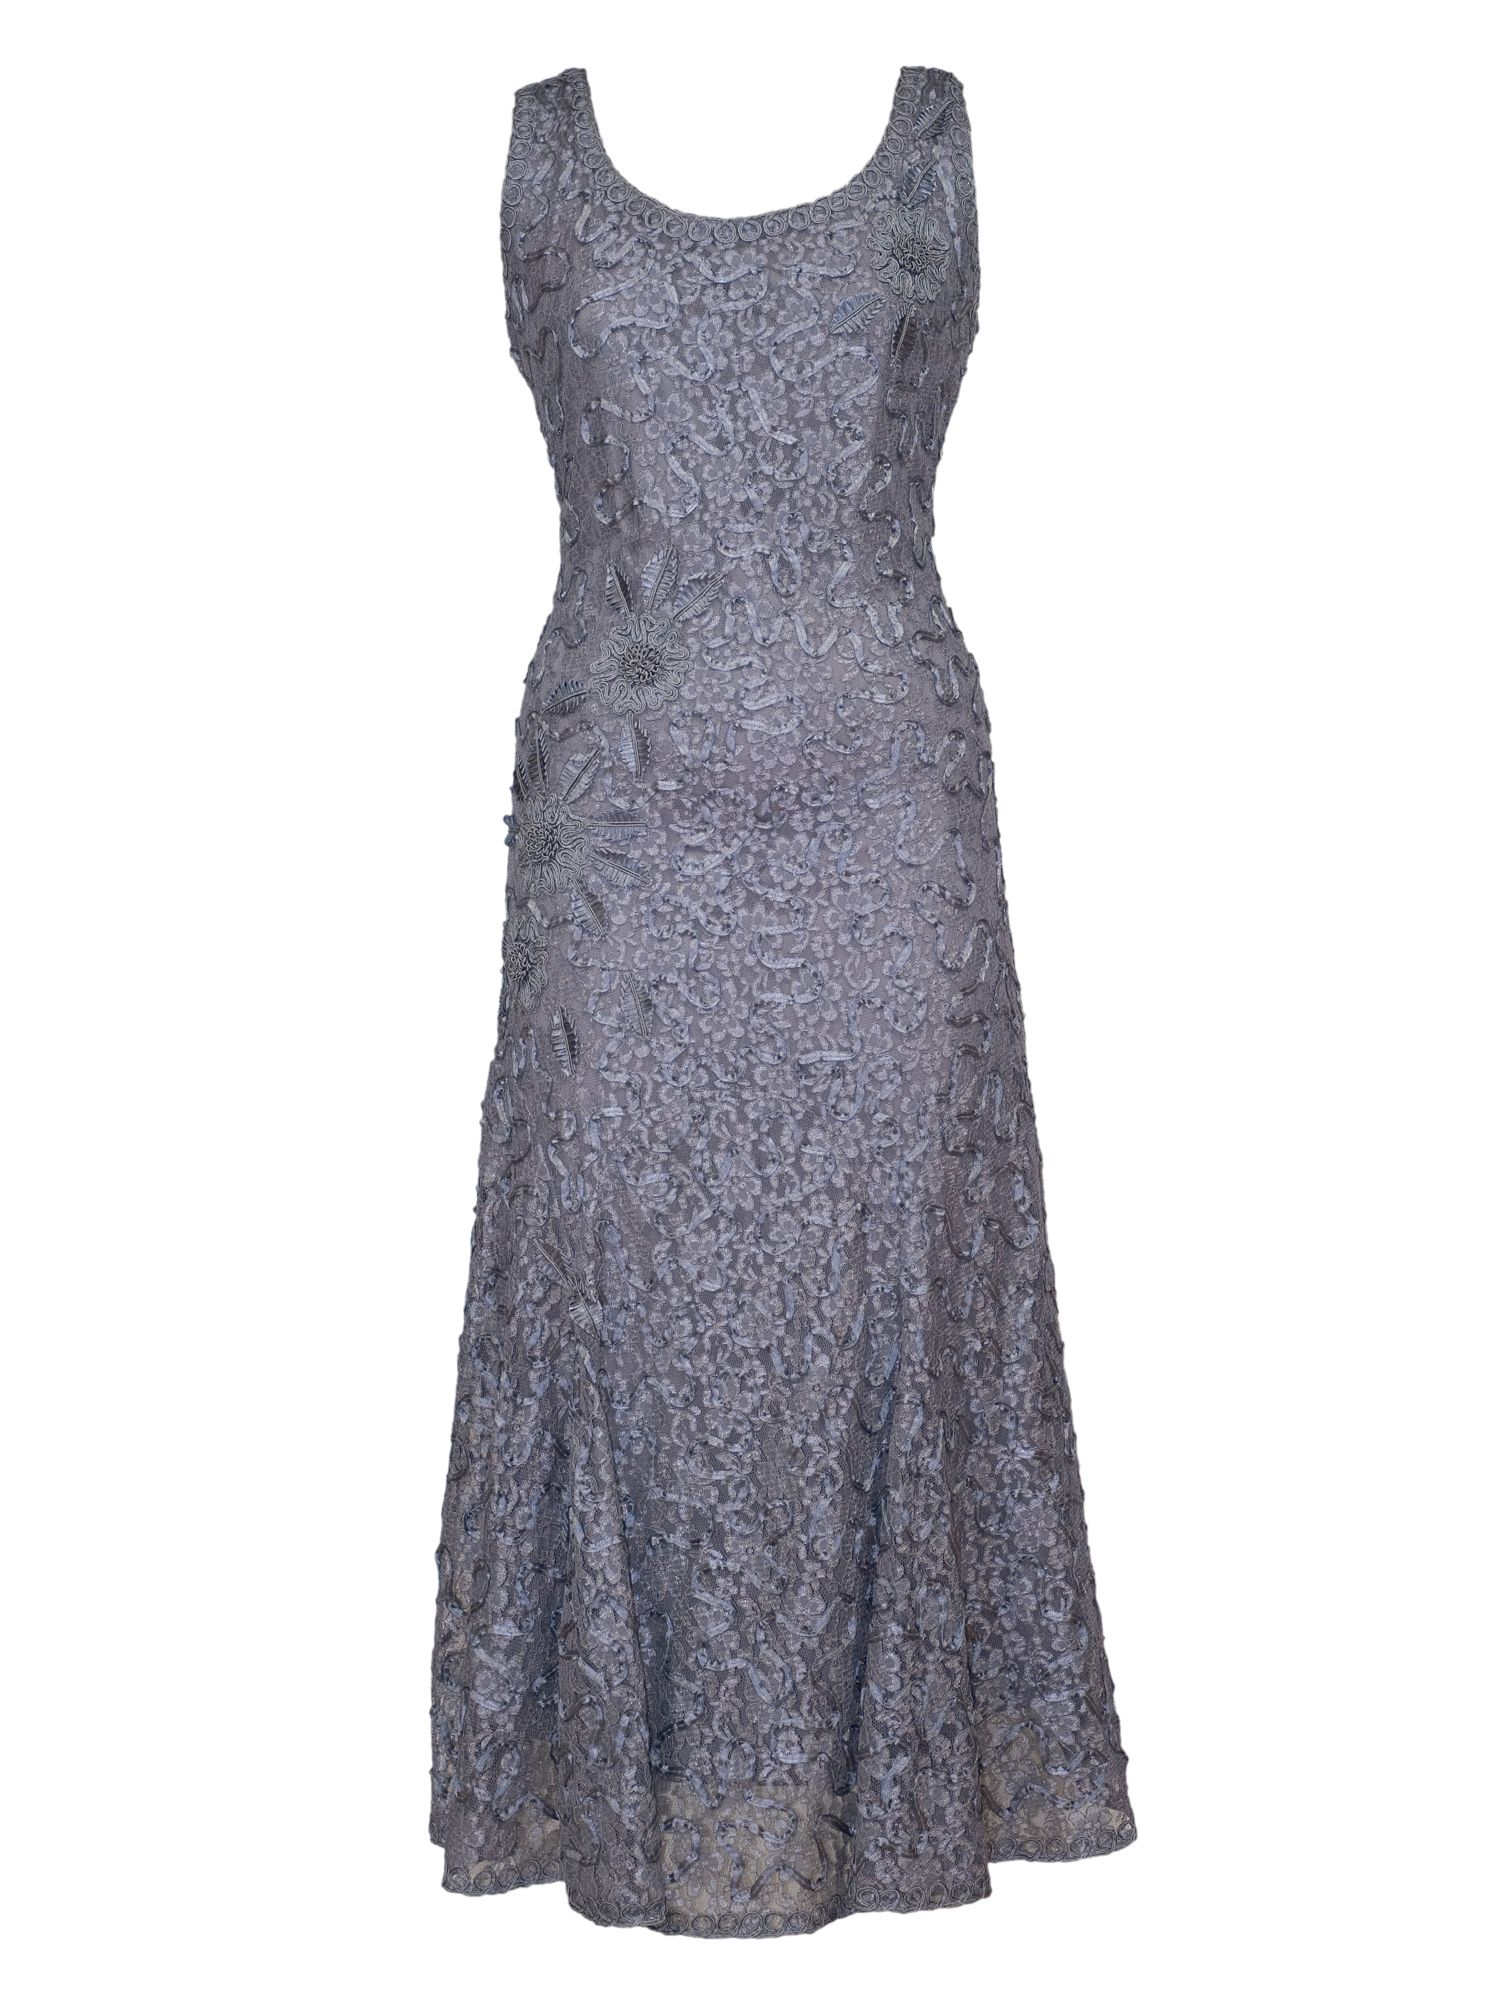 Chesca Cornelli Embroidered Lace Dress, Grey